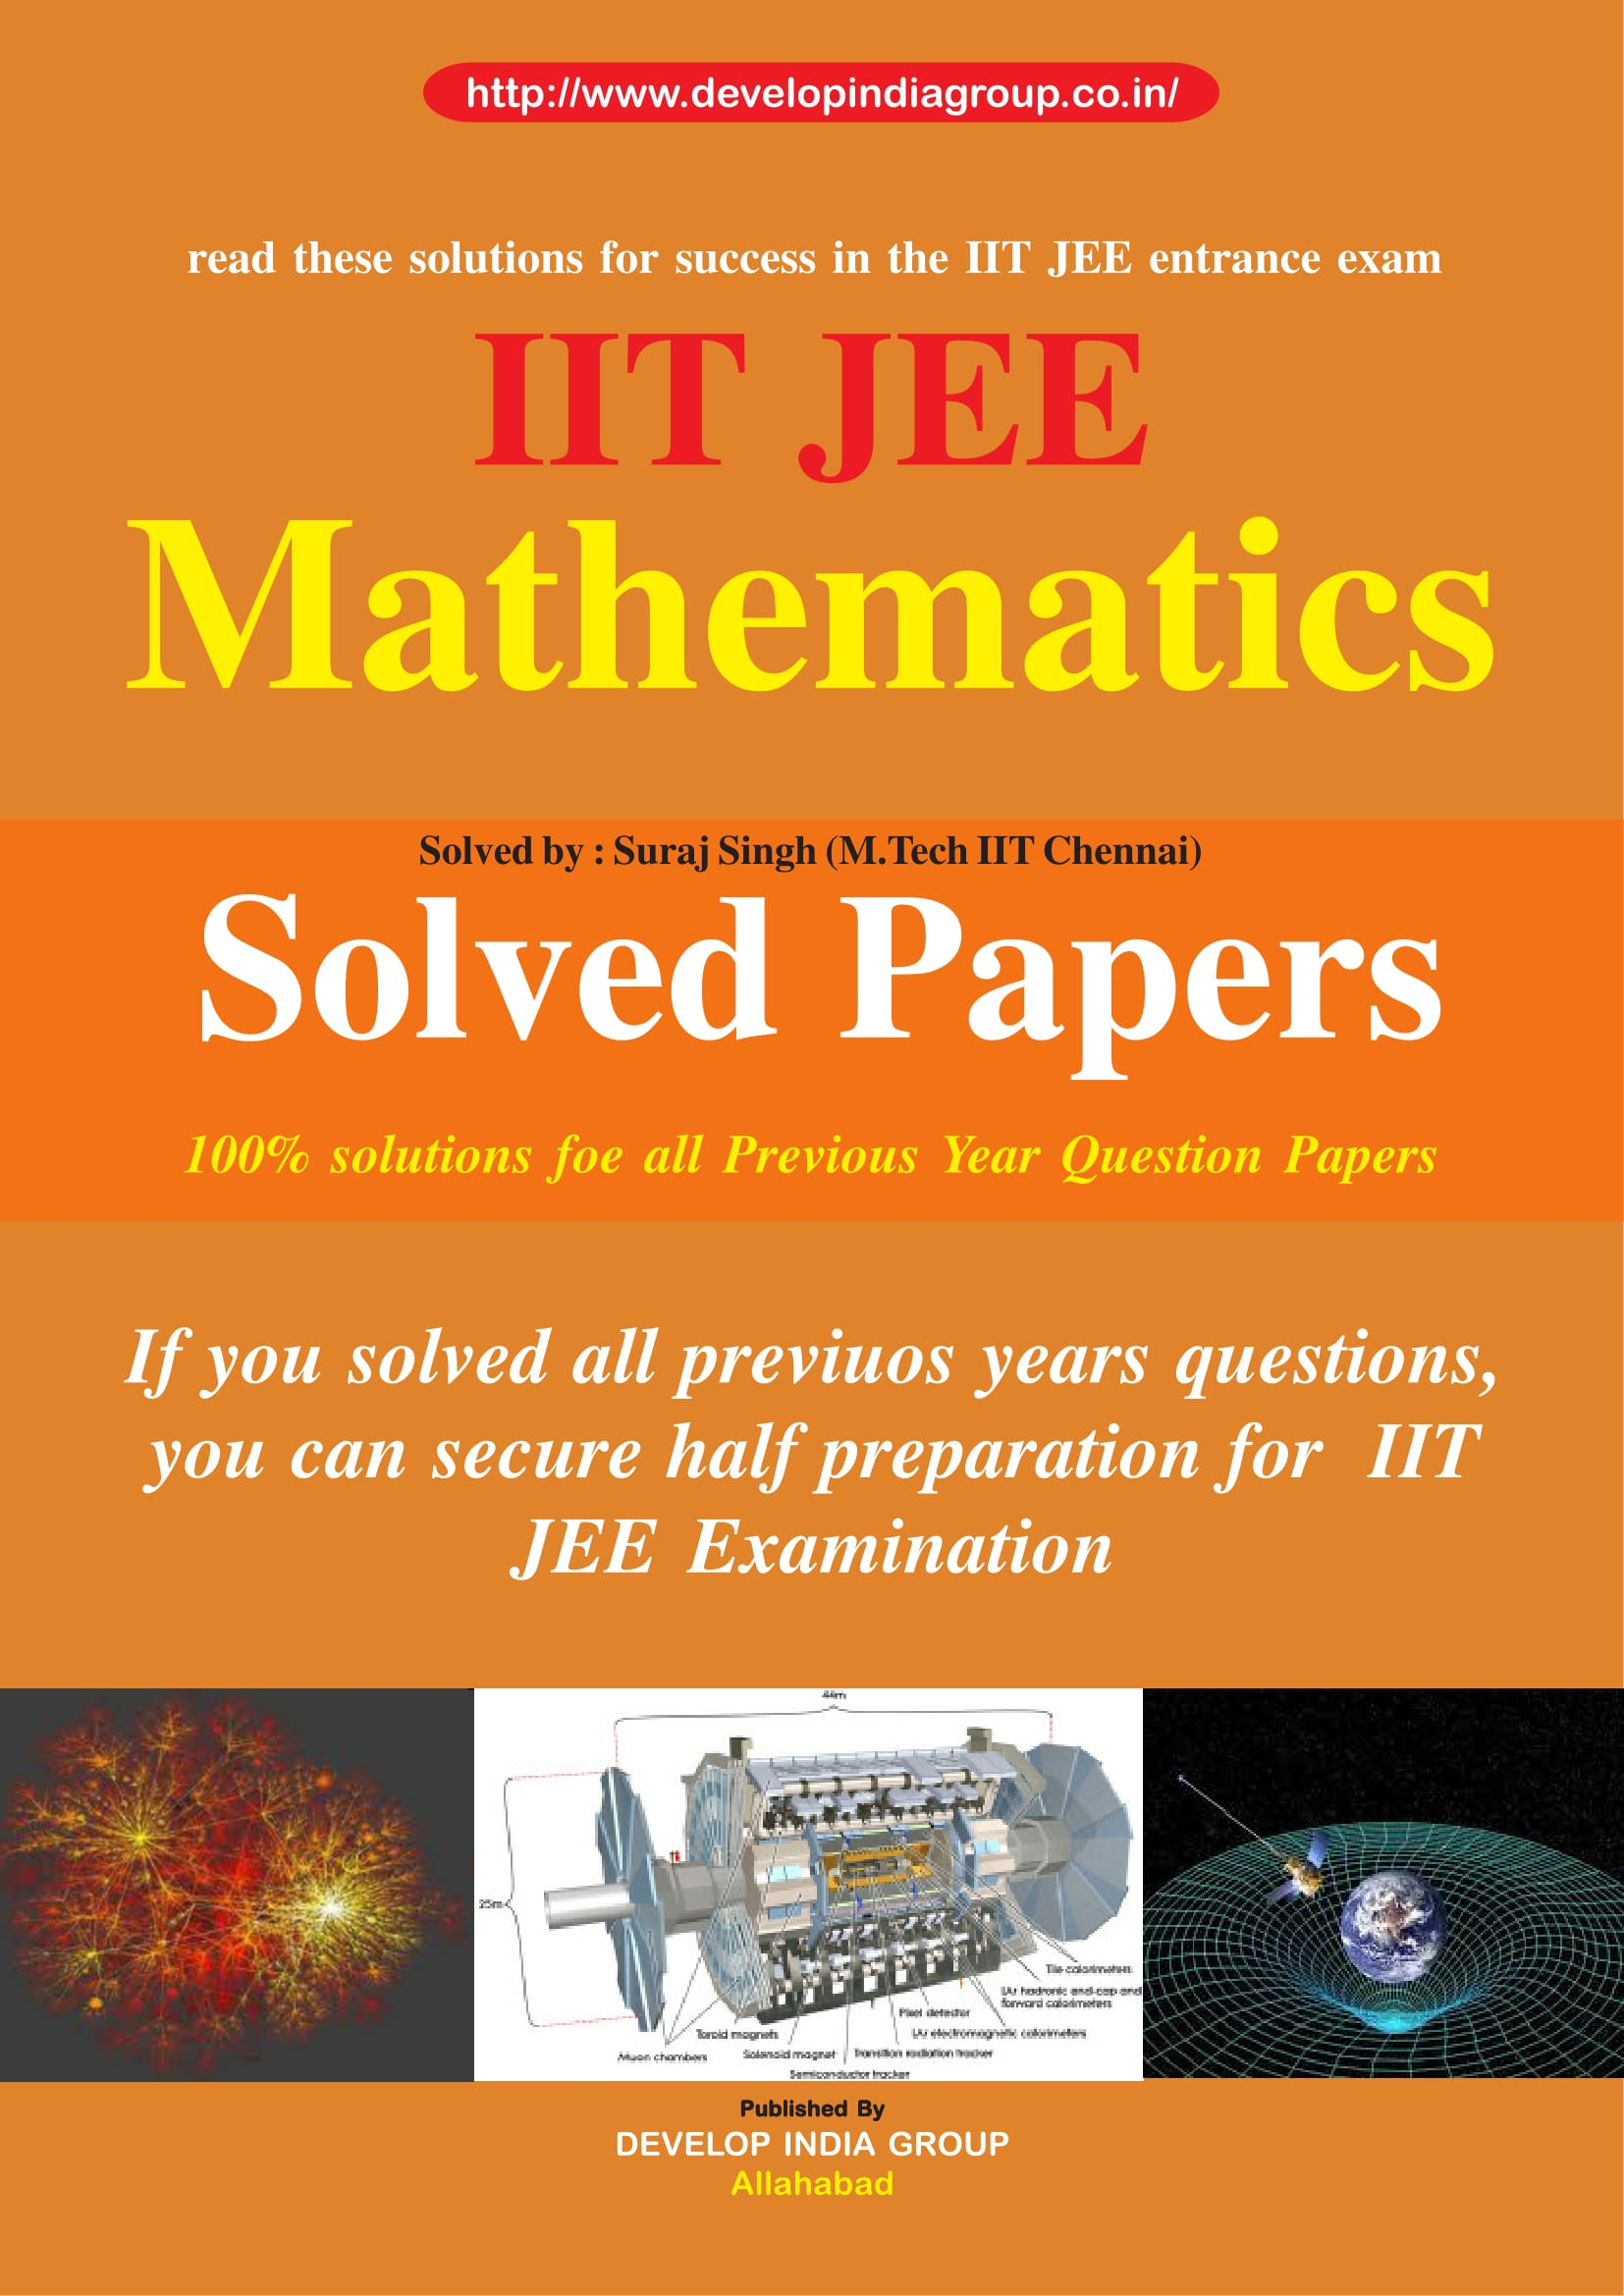 Do you really know tricks for best IIT JEE Exam Preparation?